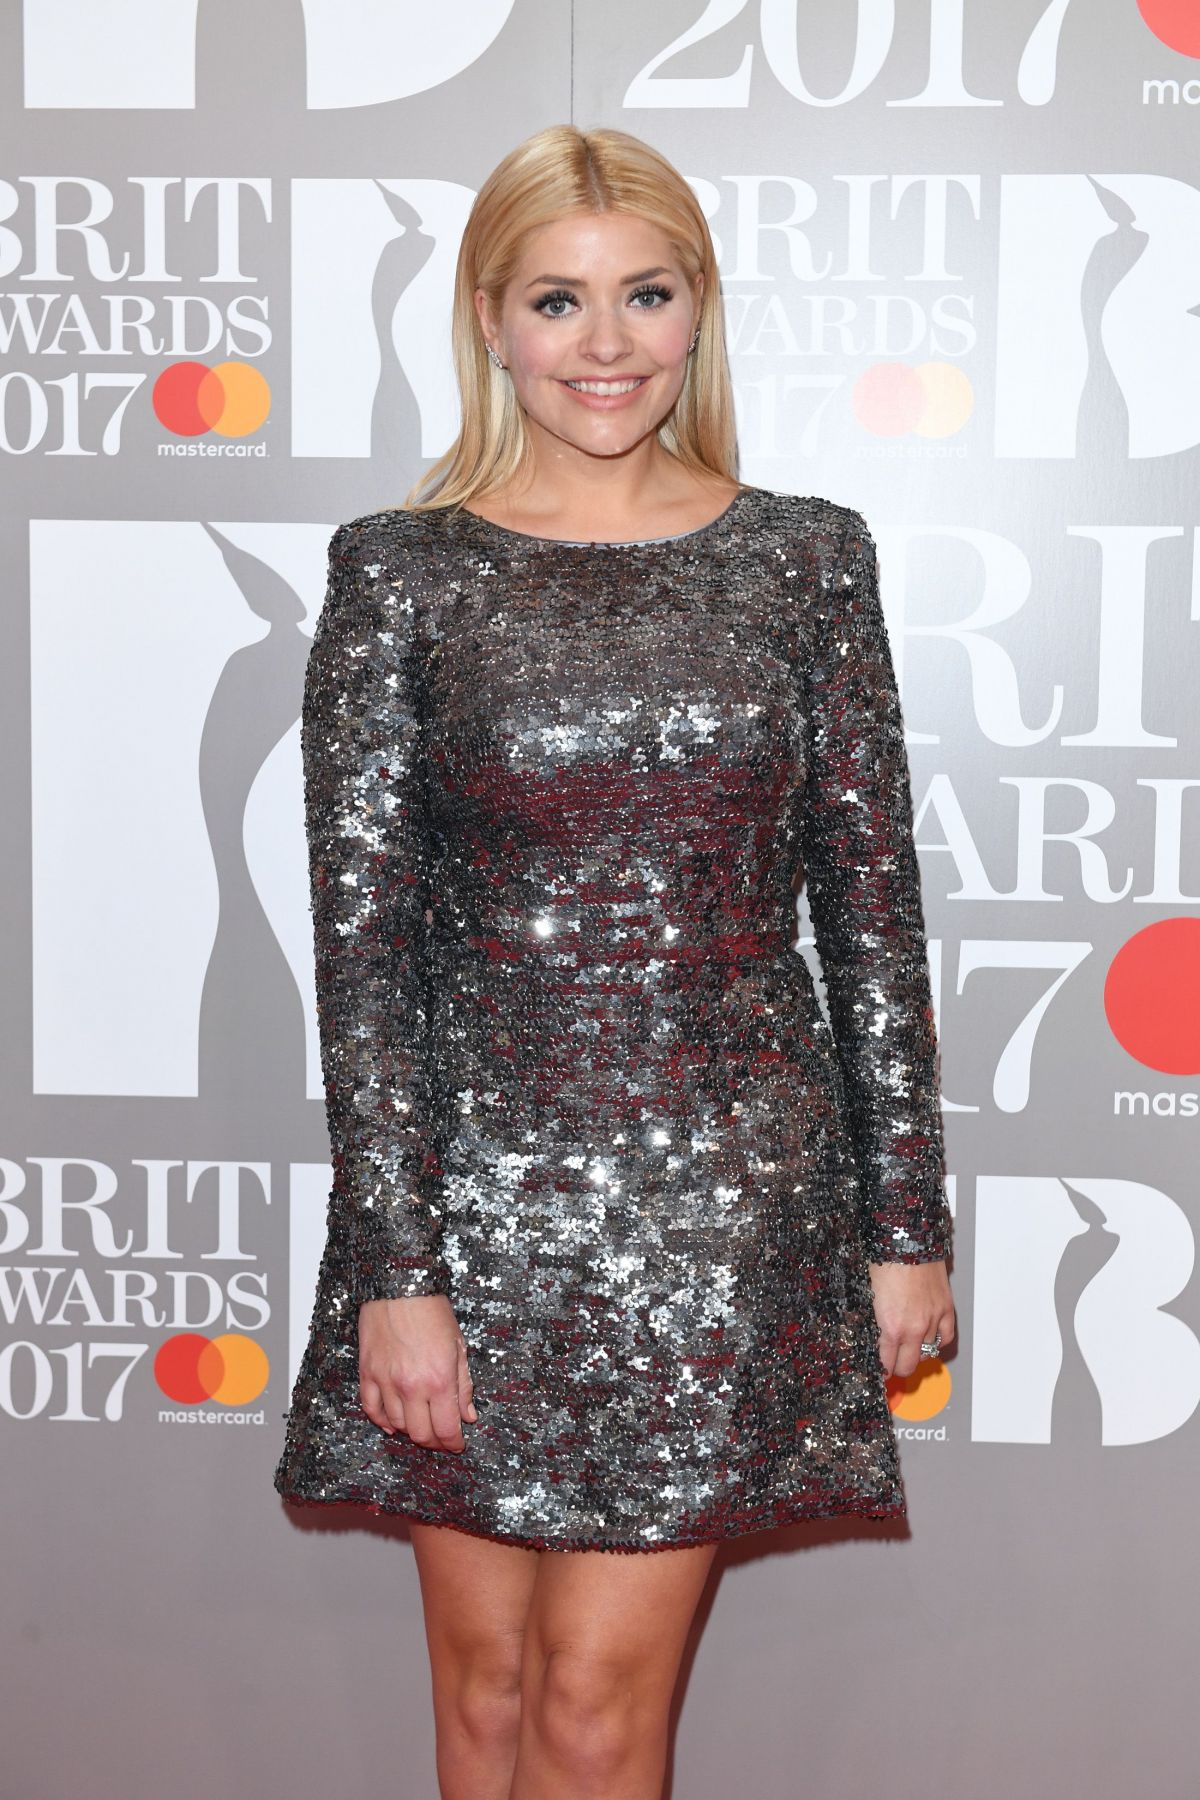 HOLLY WILLOUGHBY at Brit Awards 2017 in London 02/22/2017